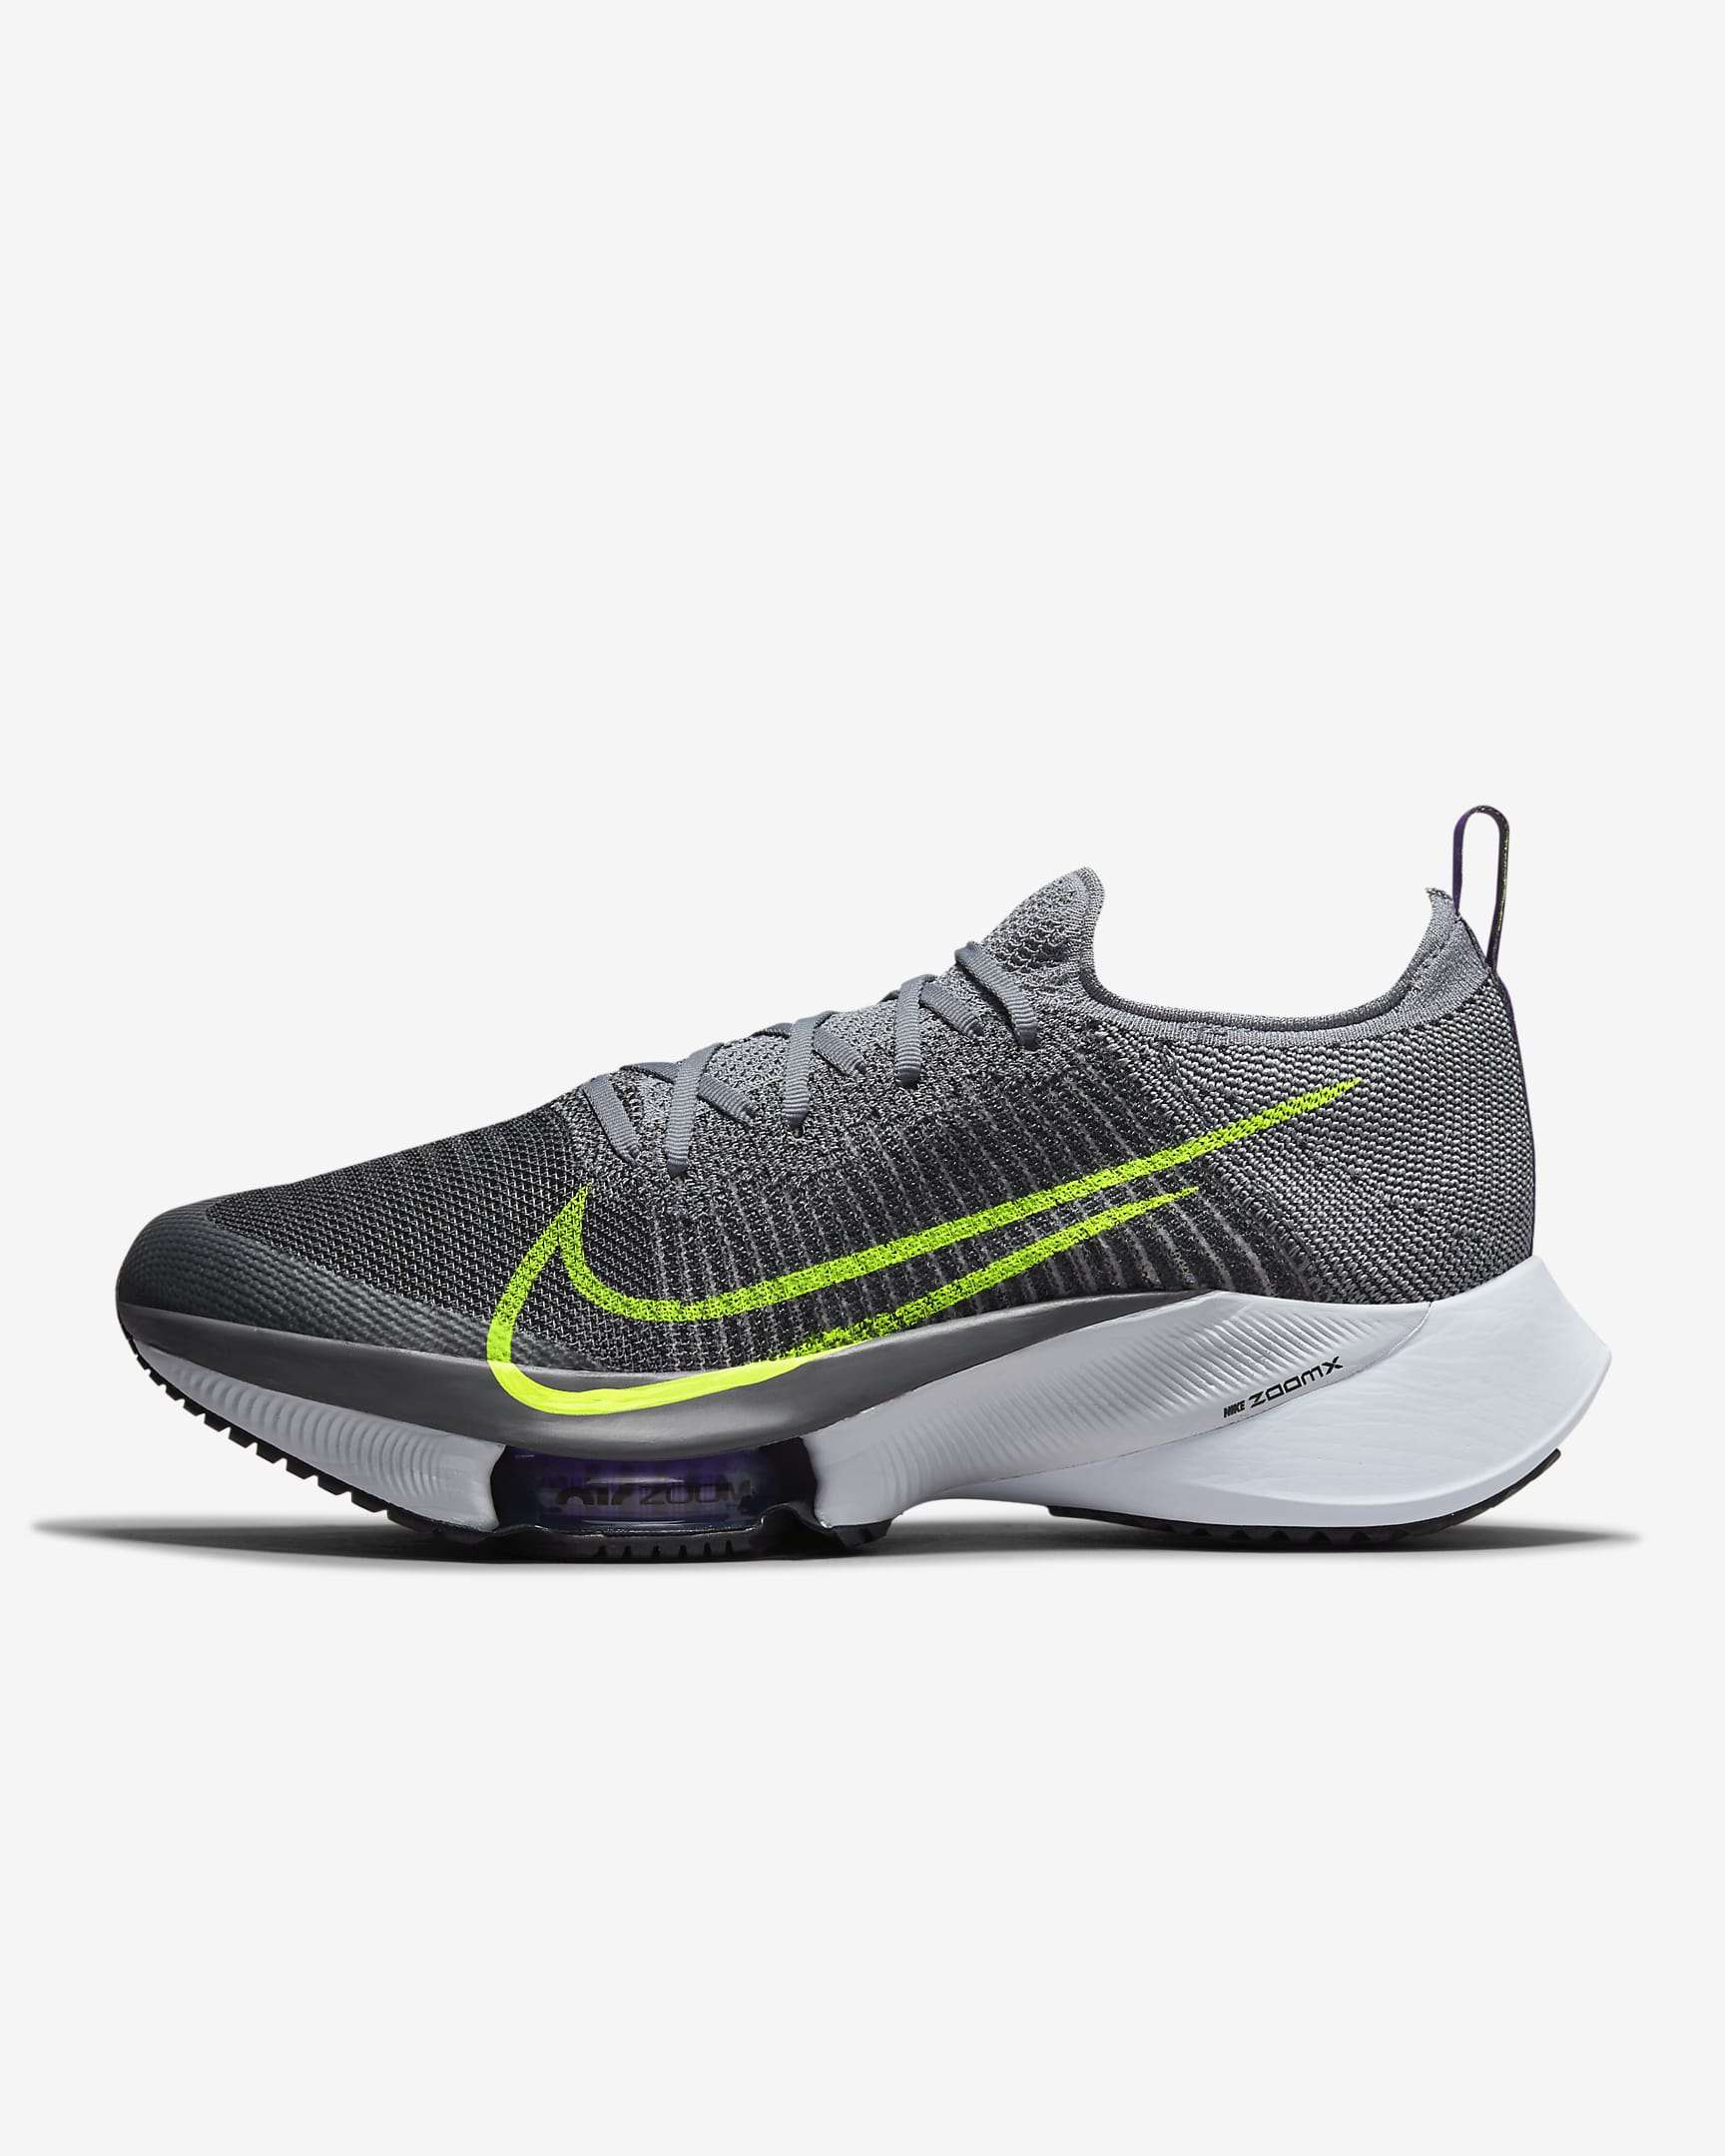 Nike Air Zoom Tempo NEXT% Men's Running Shoes